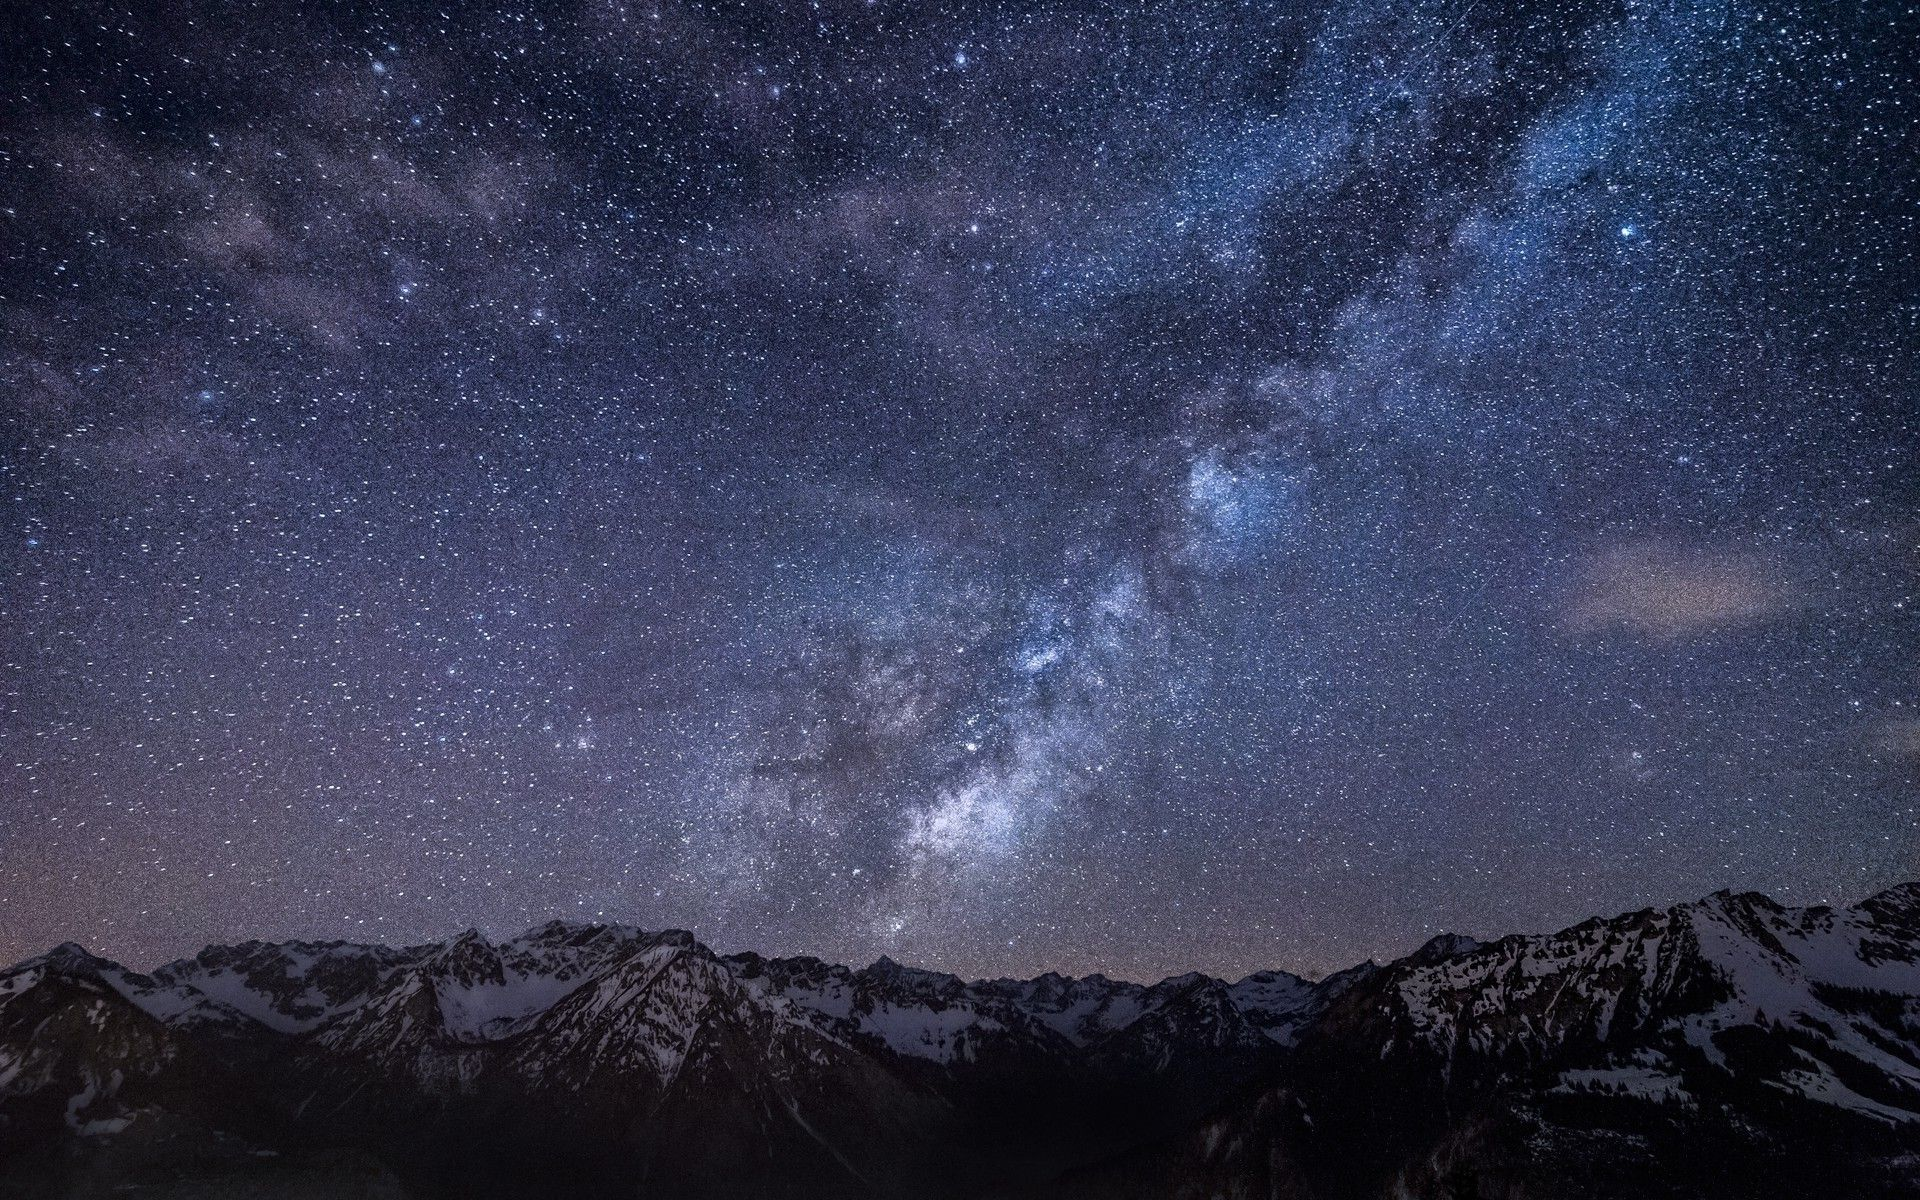 Starry sky above the mountains wallpaper, Starry sky above the ...